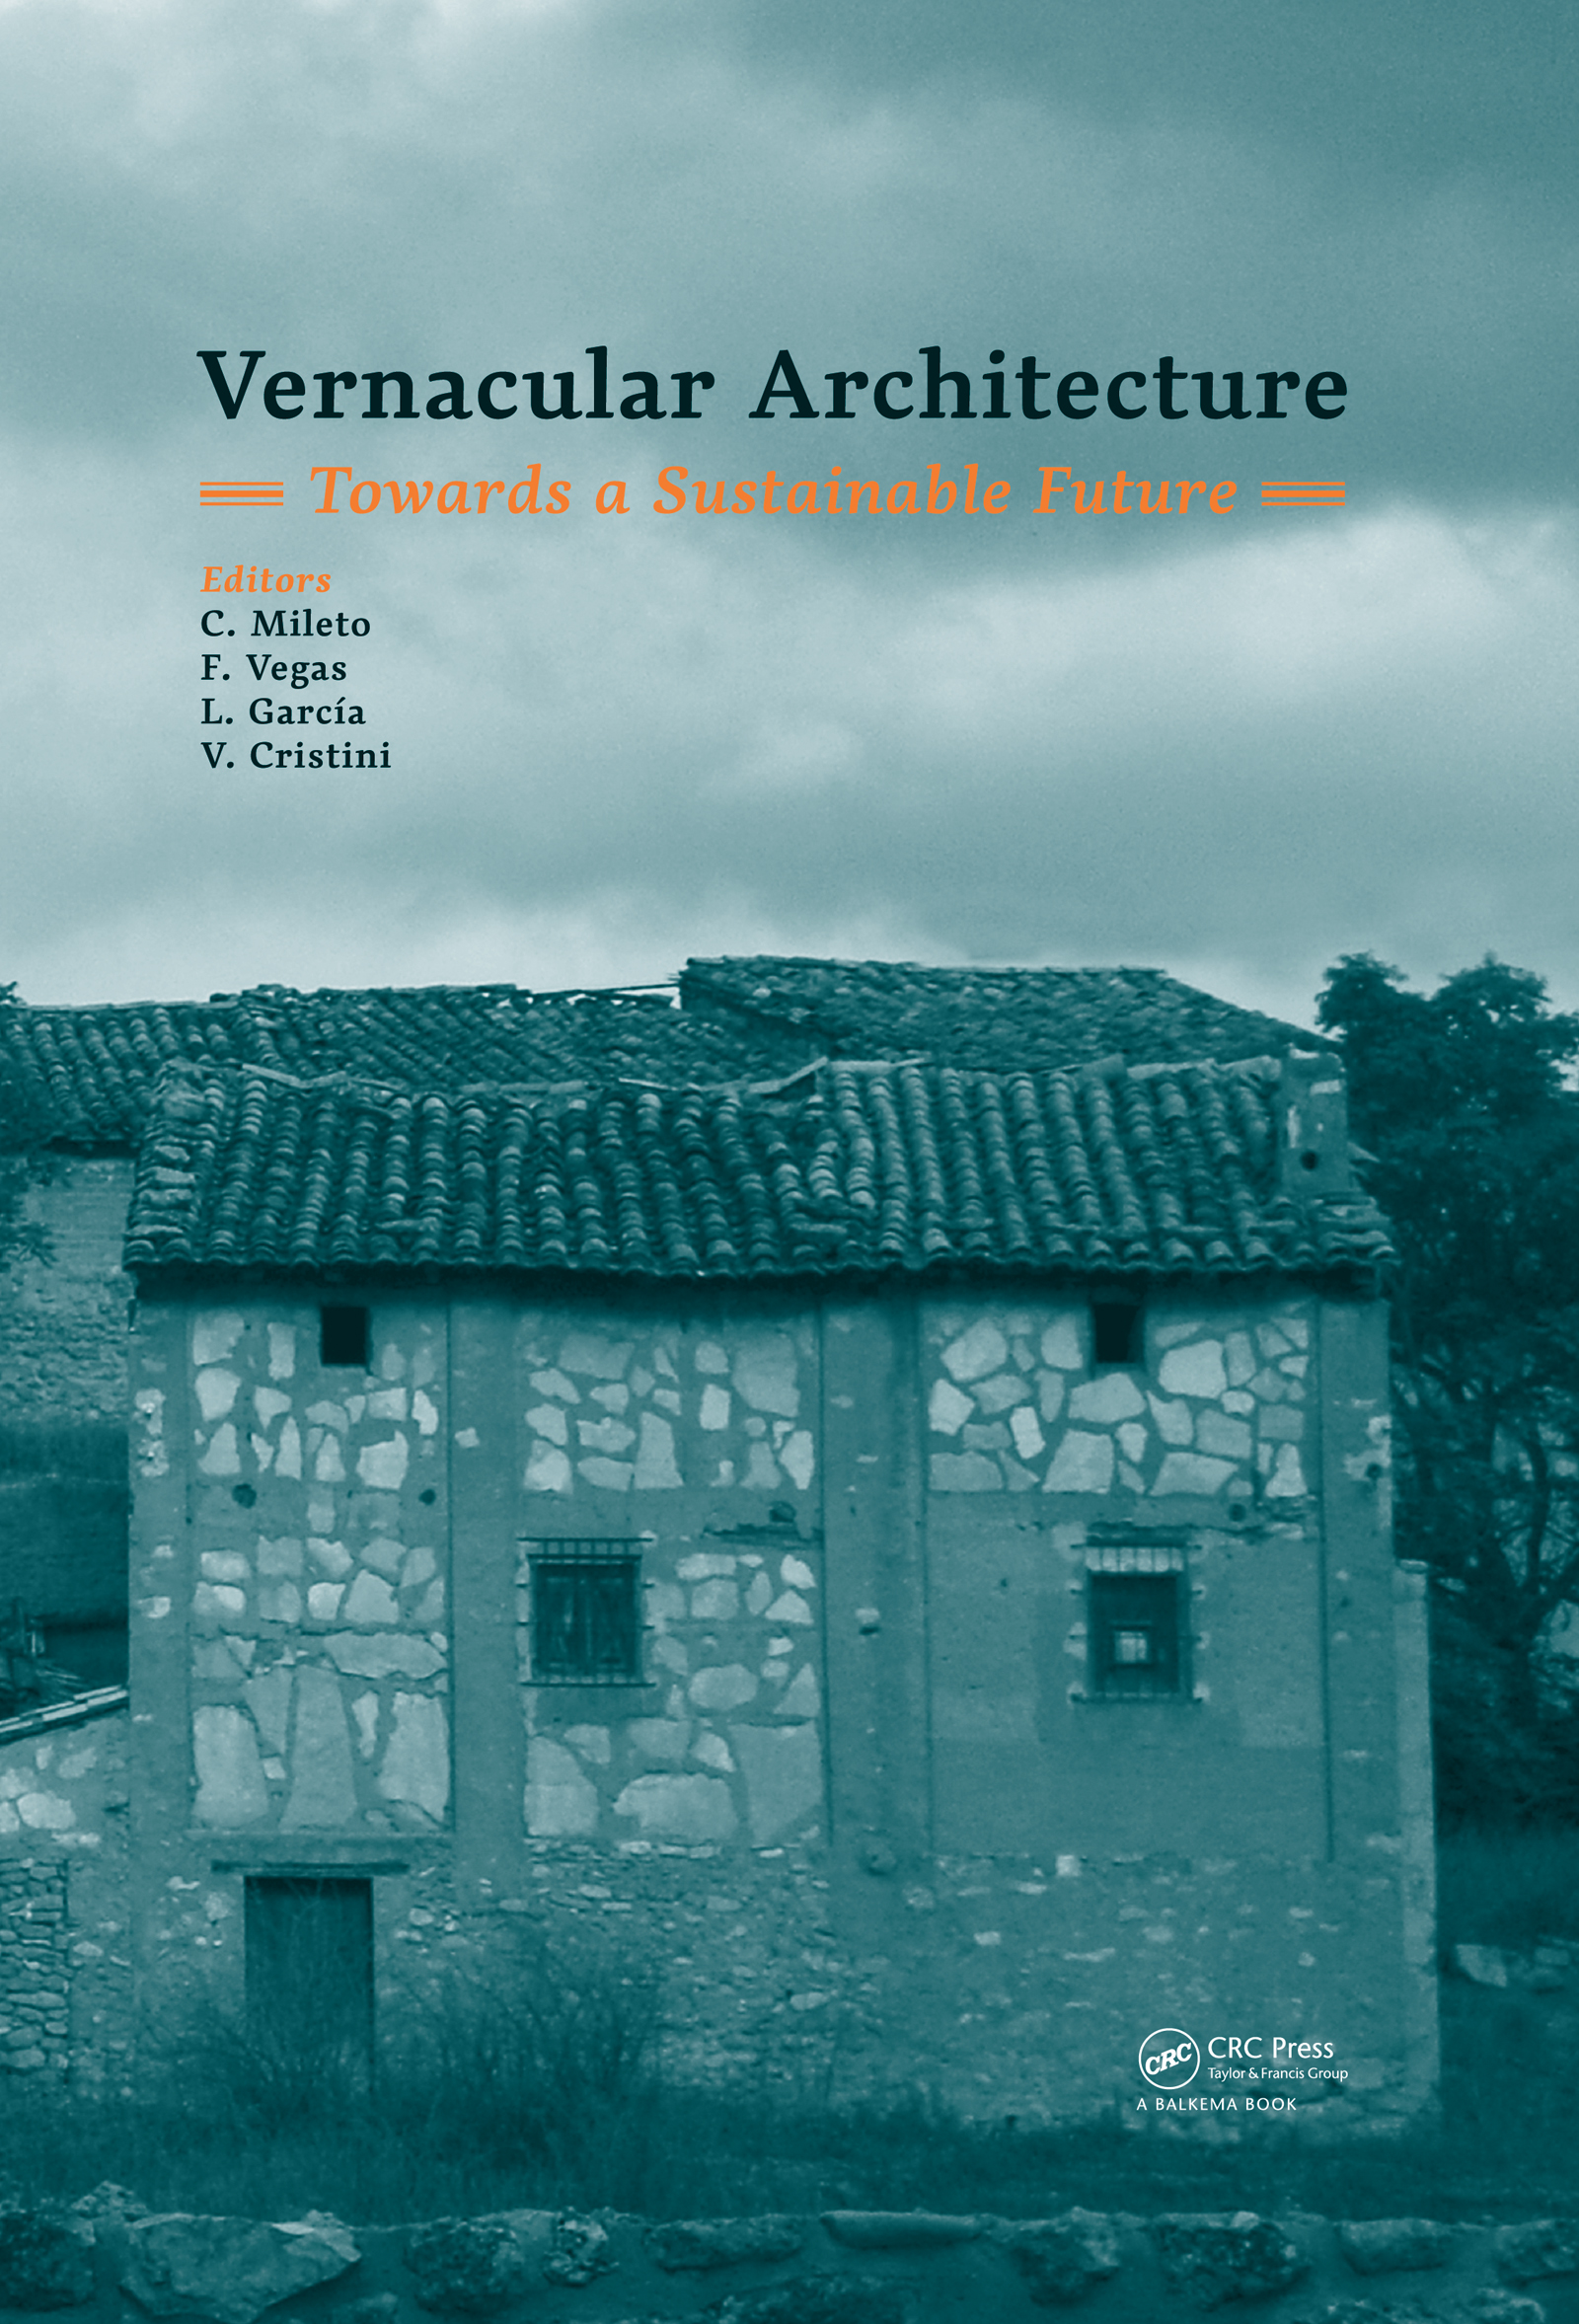 Vernacular Architecture: Towards a Sustainable Future: 1st Edition (Pack - Book and CD) book cover